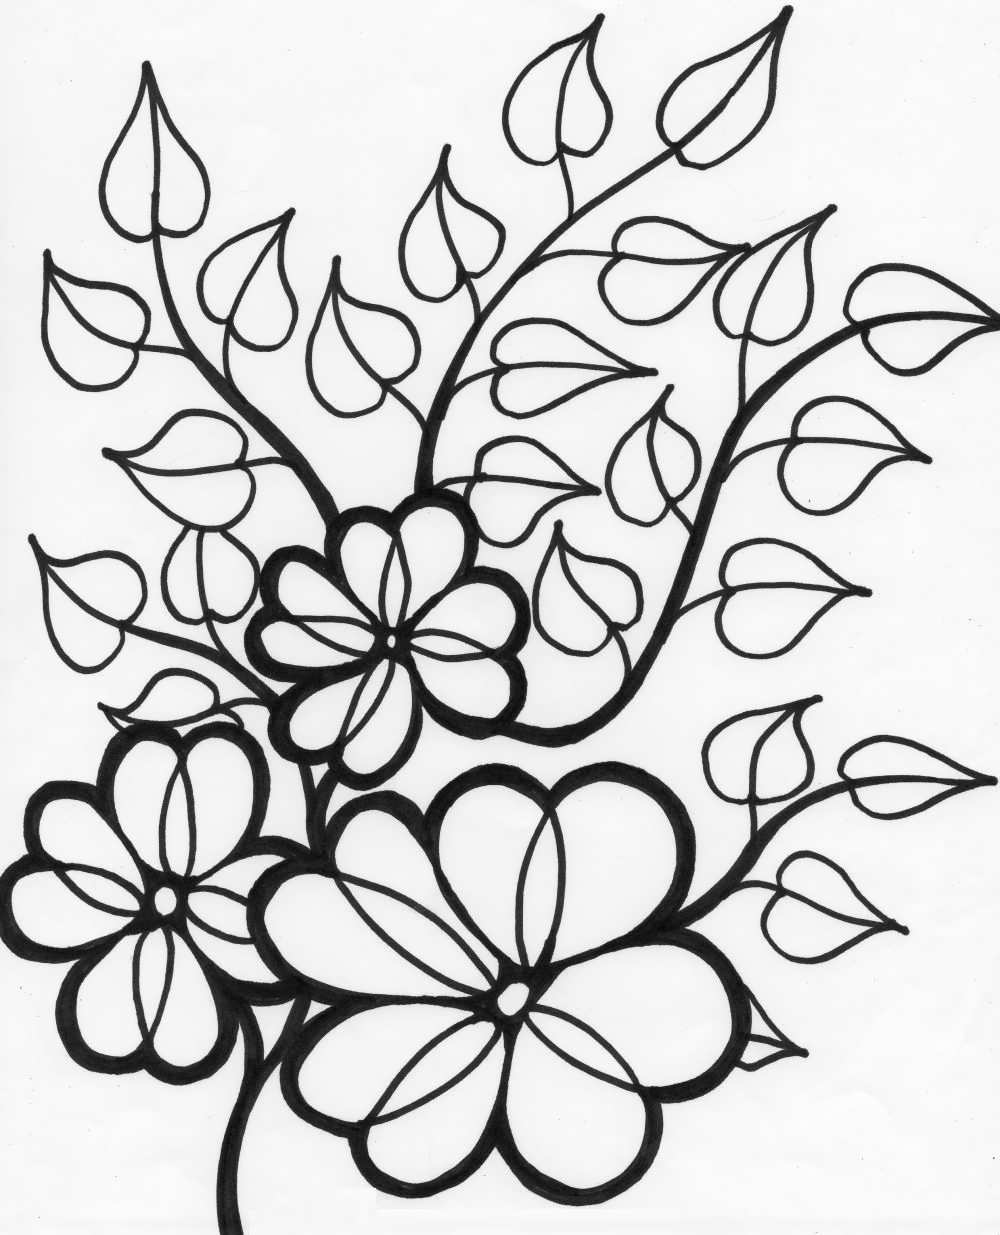 outline pictures of flowers for colouring daylily00120110906gif 25503300 lilies drawing of colouring for outline pictures flowers